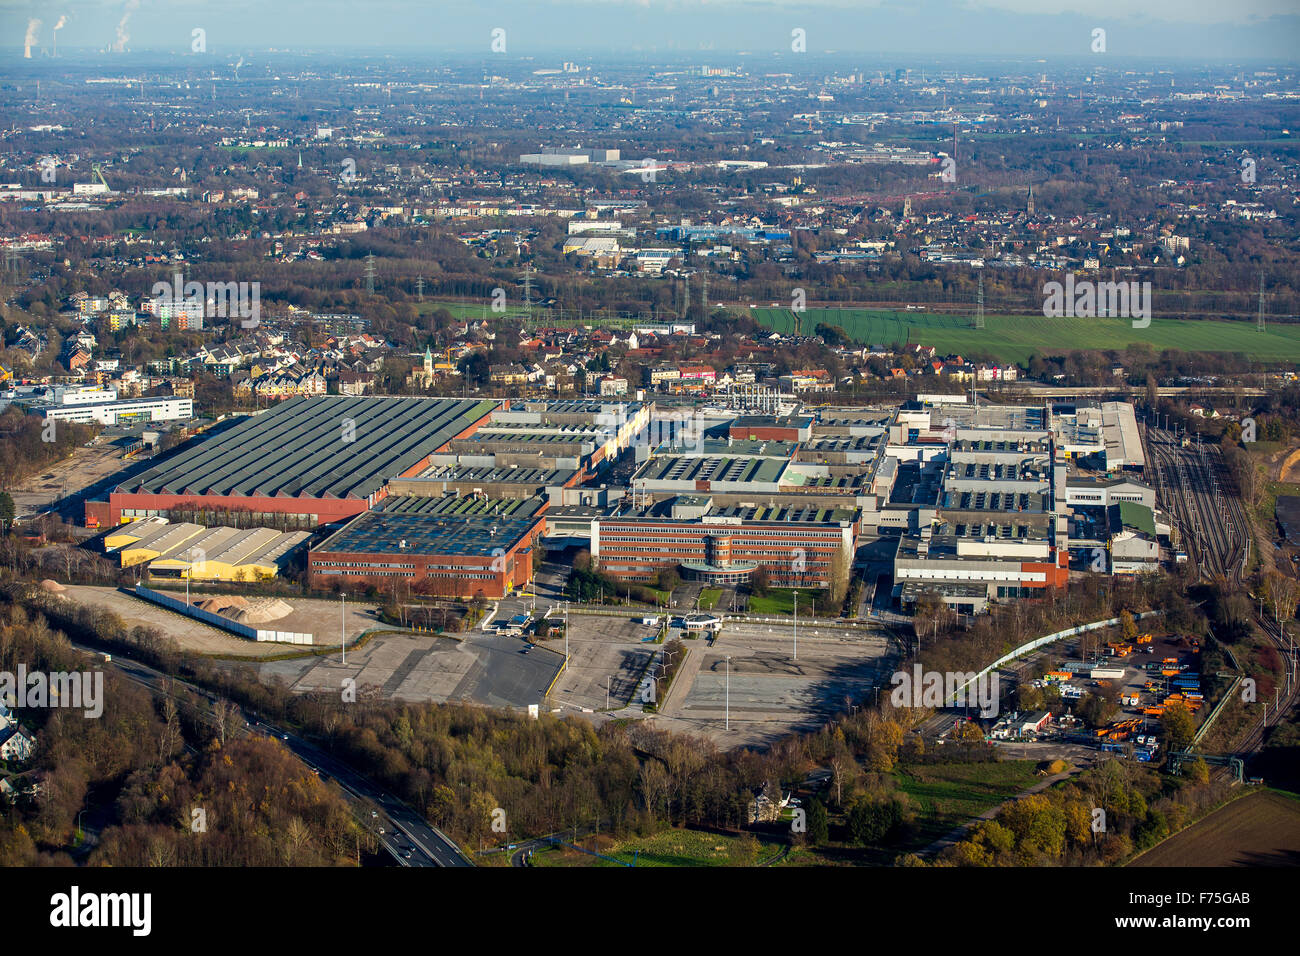 Entrance from Opelwerk 1 with missing Logo, Opel plant 1, demolition, Bochum, Ruhr area, North Rhine Westphalia - Stock Image